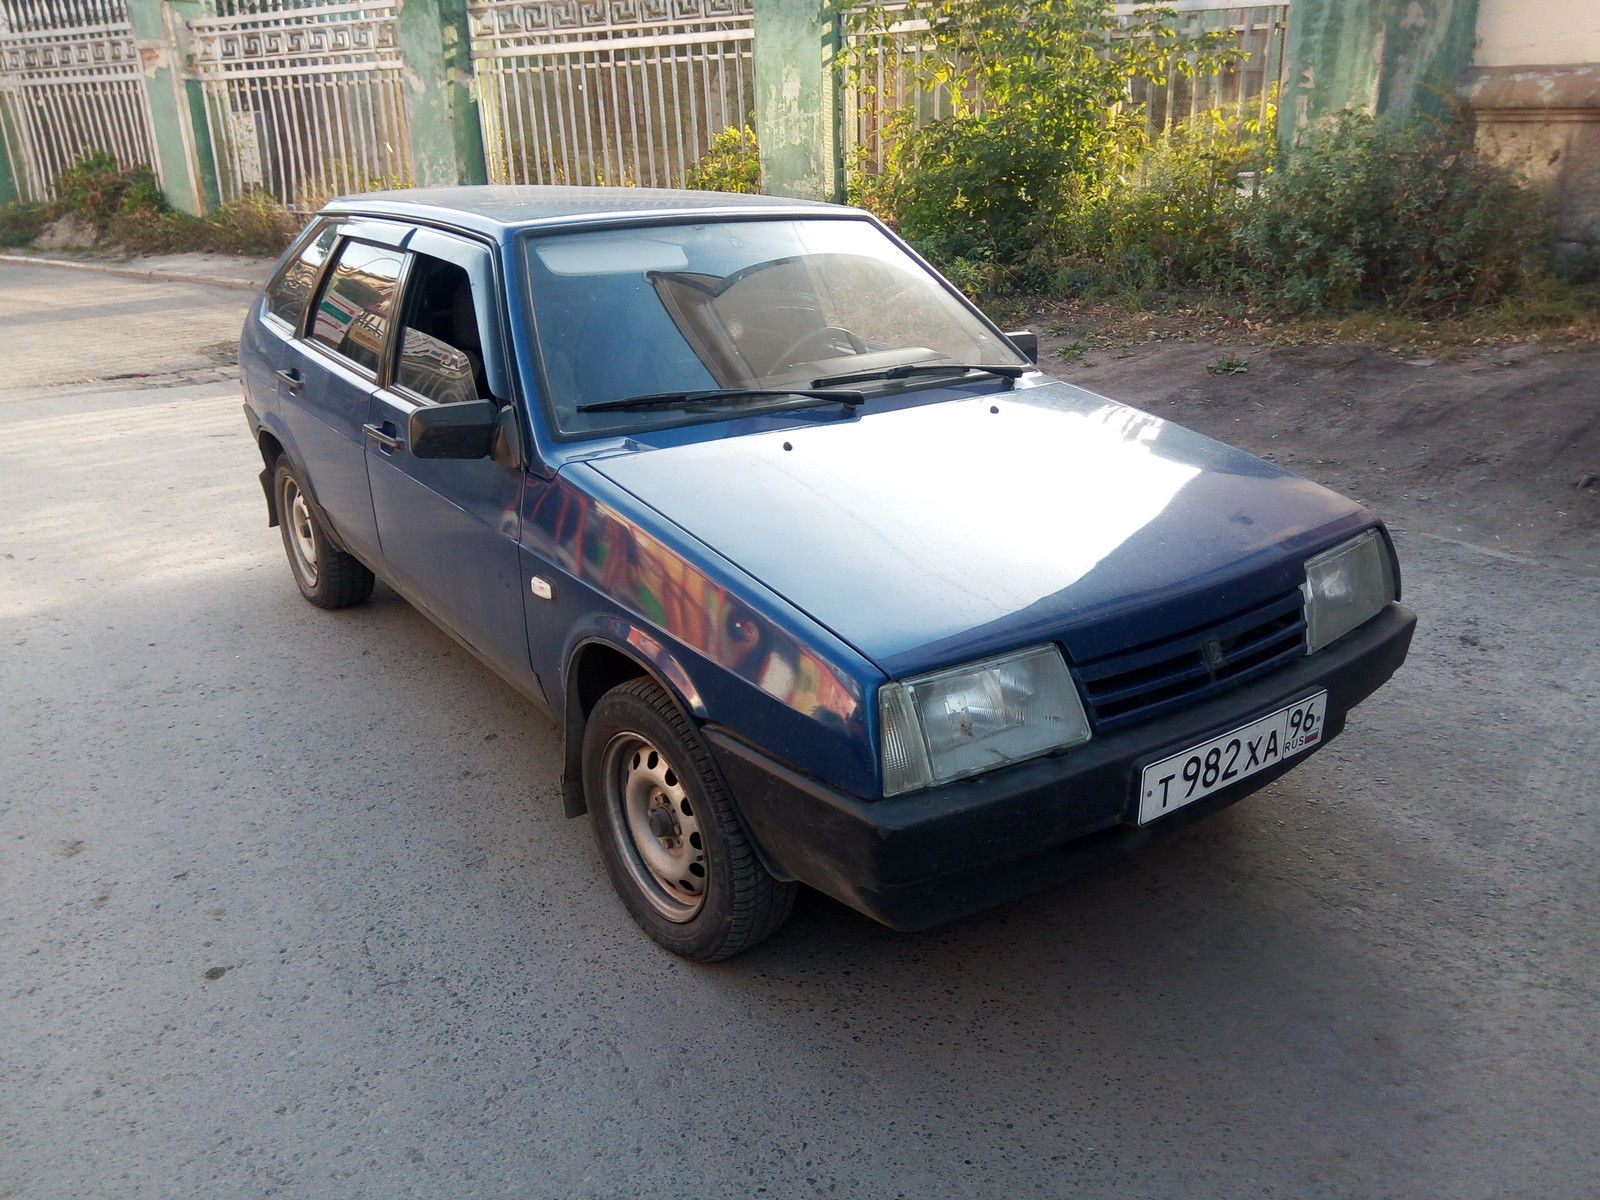 The Best Car Ad On eBay Right Now Is For A 2003 Lada – Seriously! This Is Hilarious